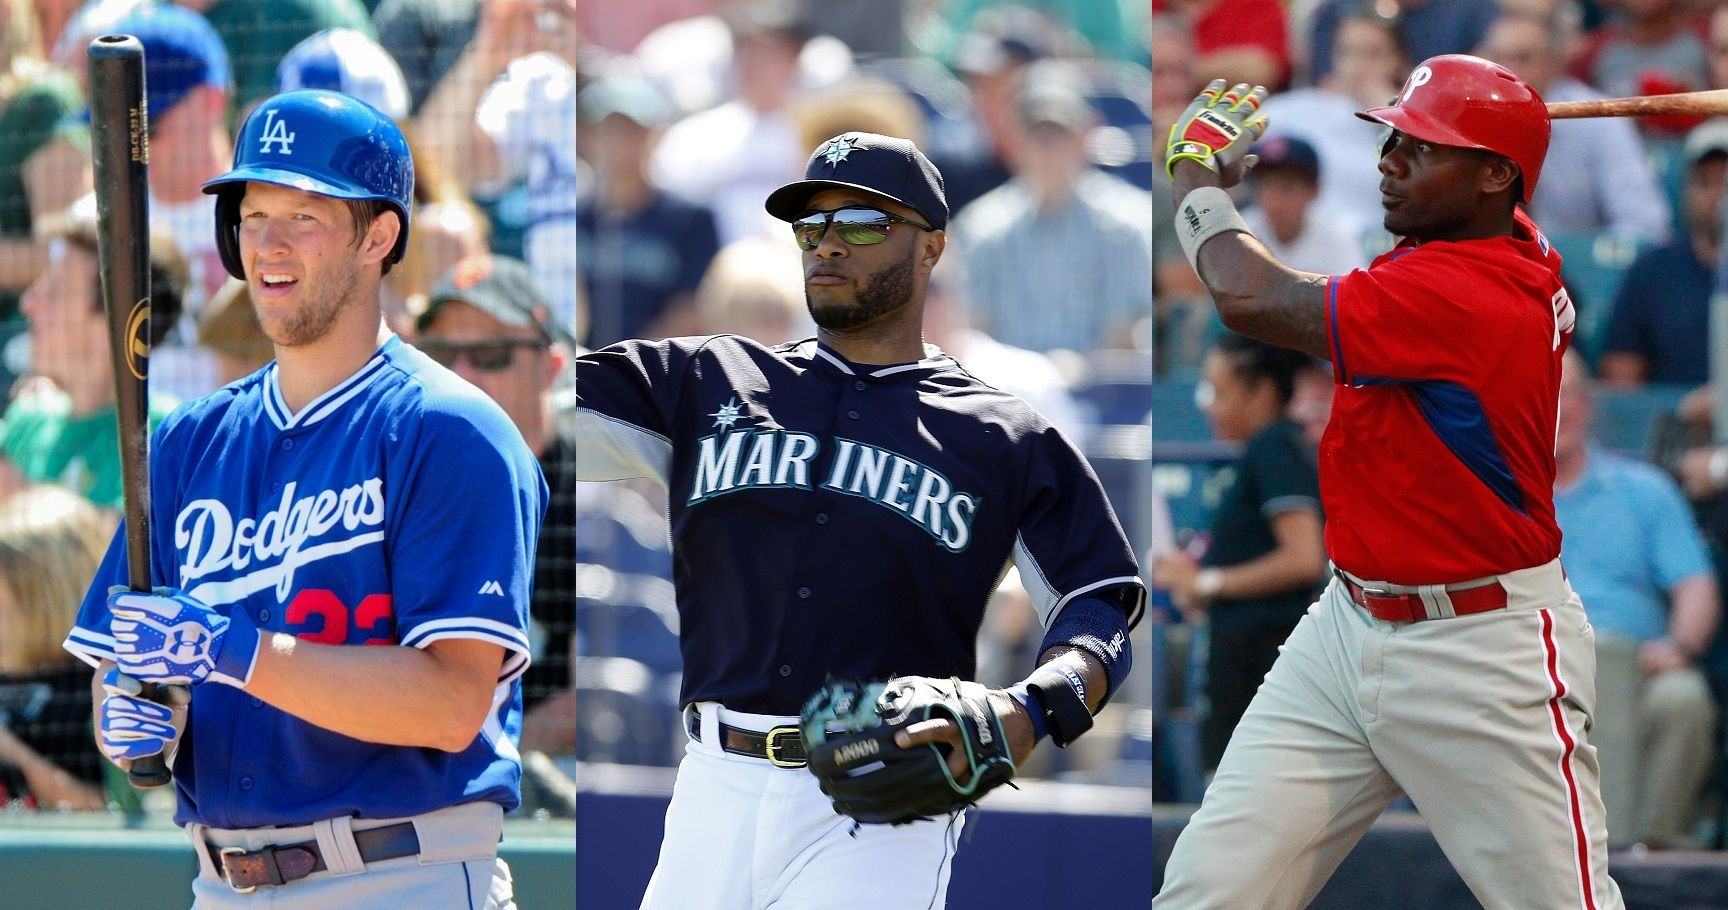 are major league baseball players overpaid